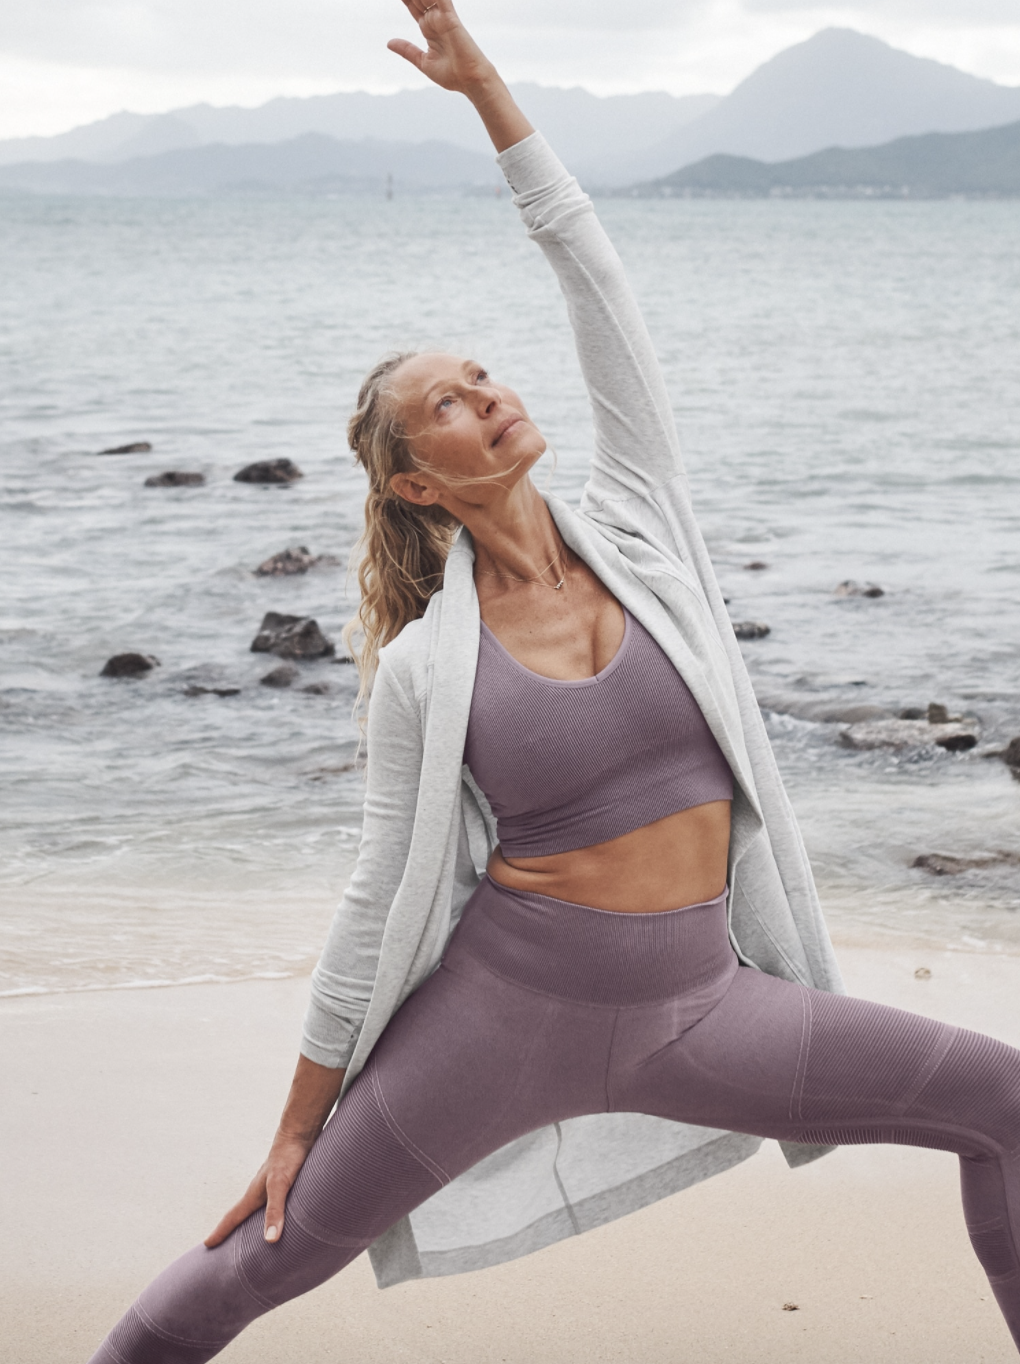 A model wearing the wrap over a sports bra and leggings while doing yoga poses